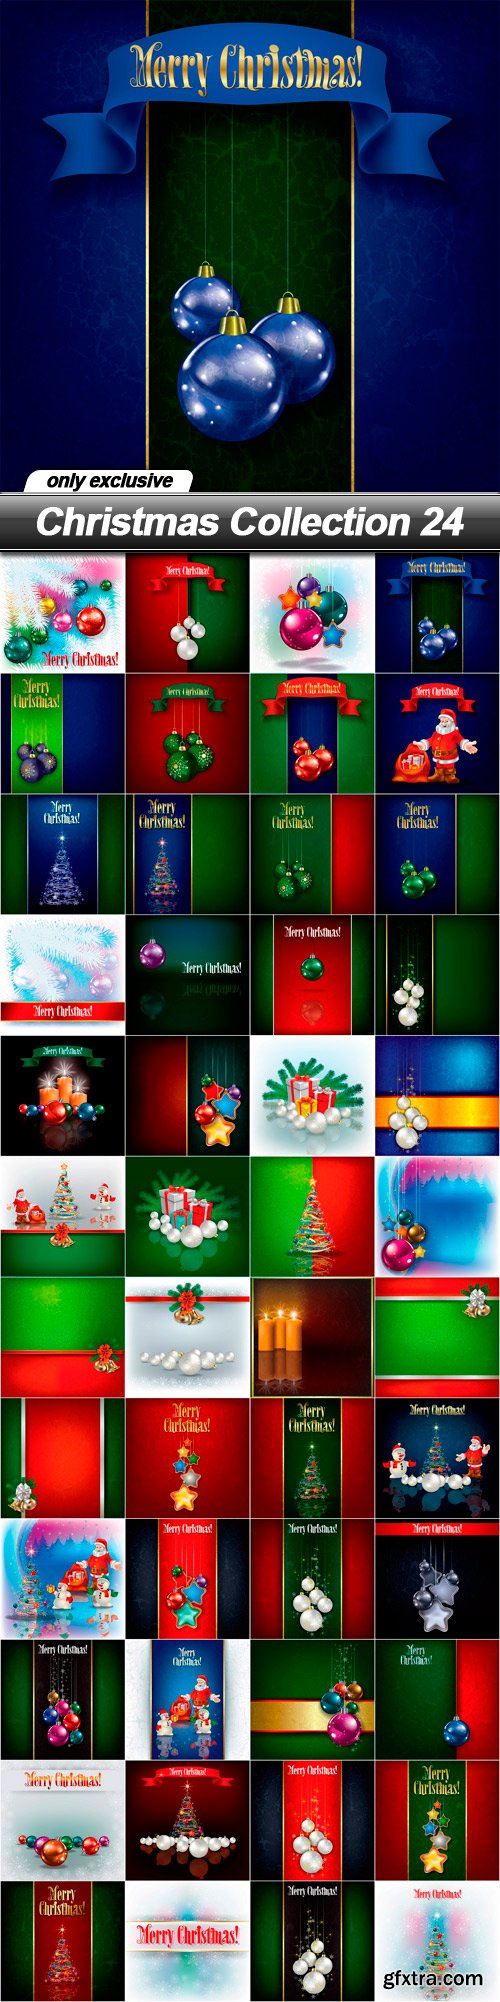 Christmas Collection 24 - 48 EPS